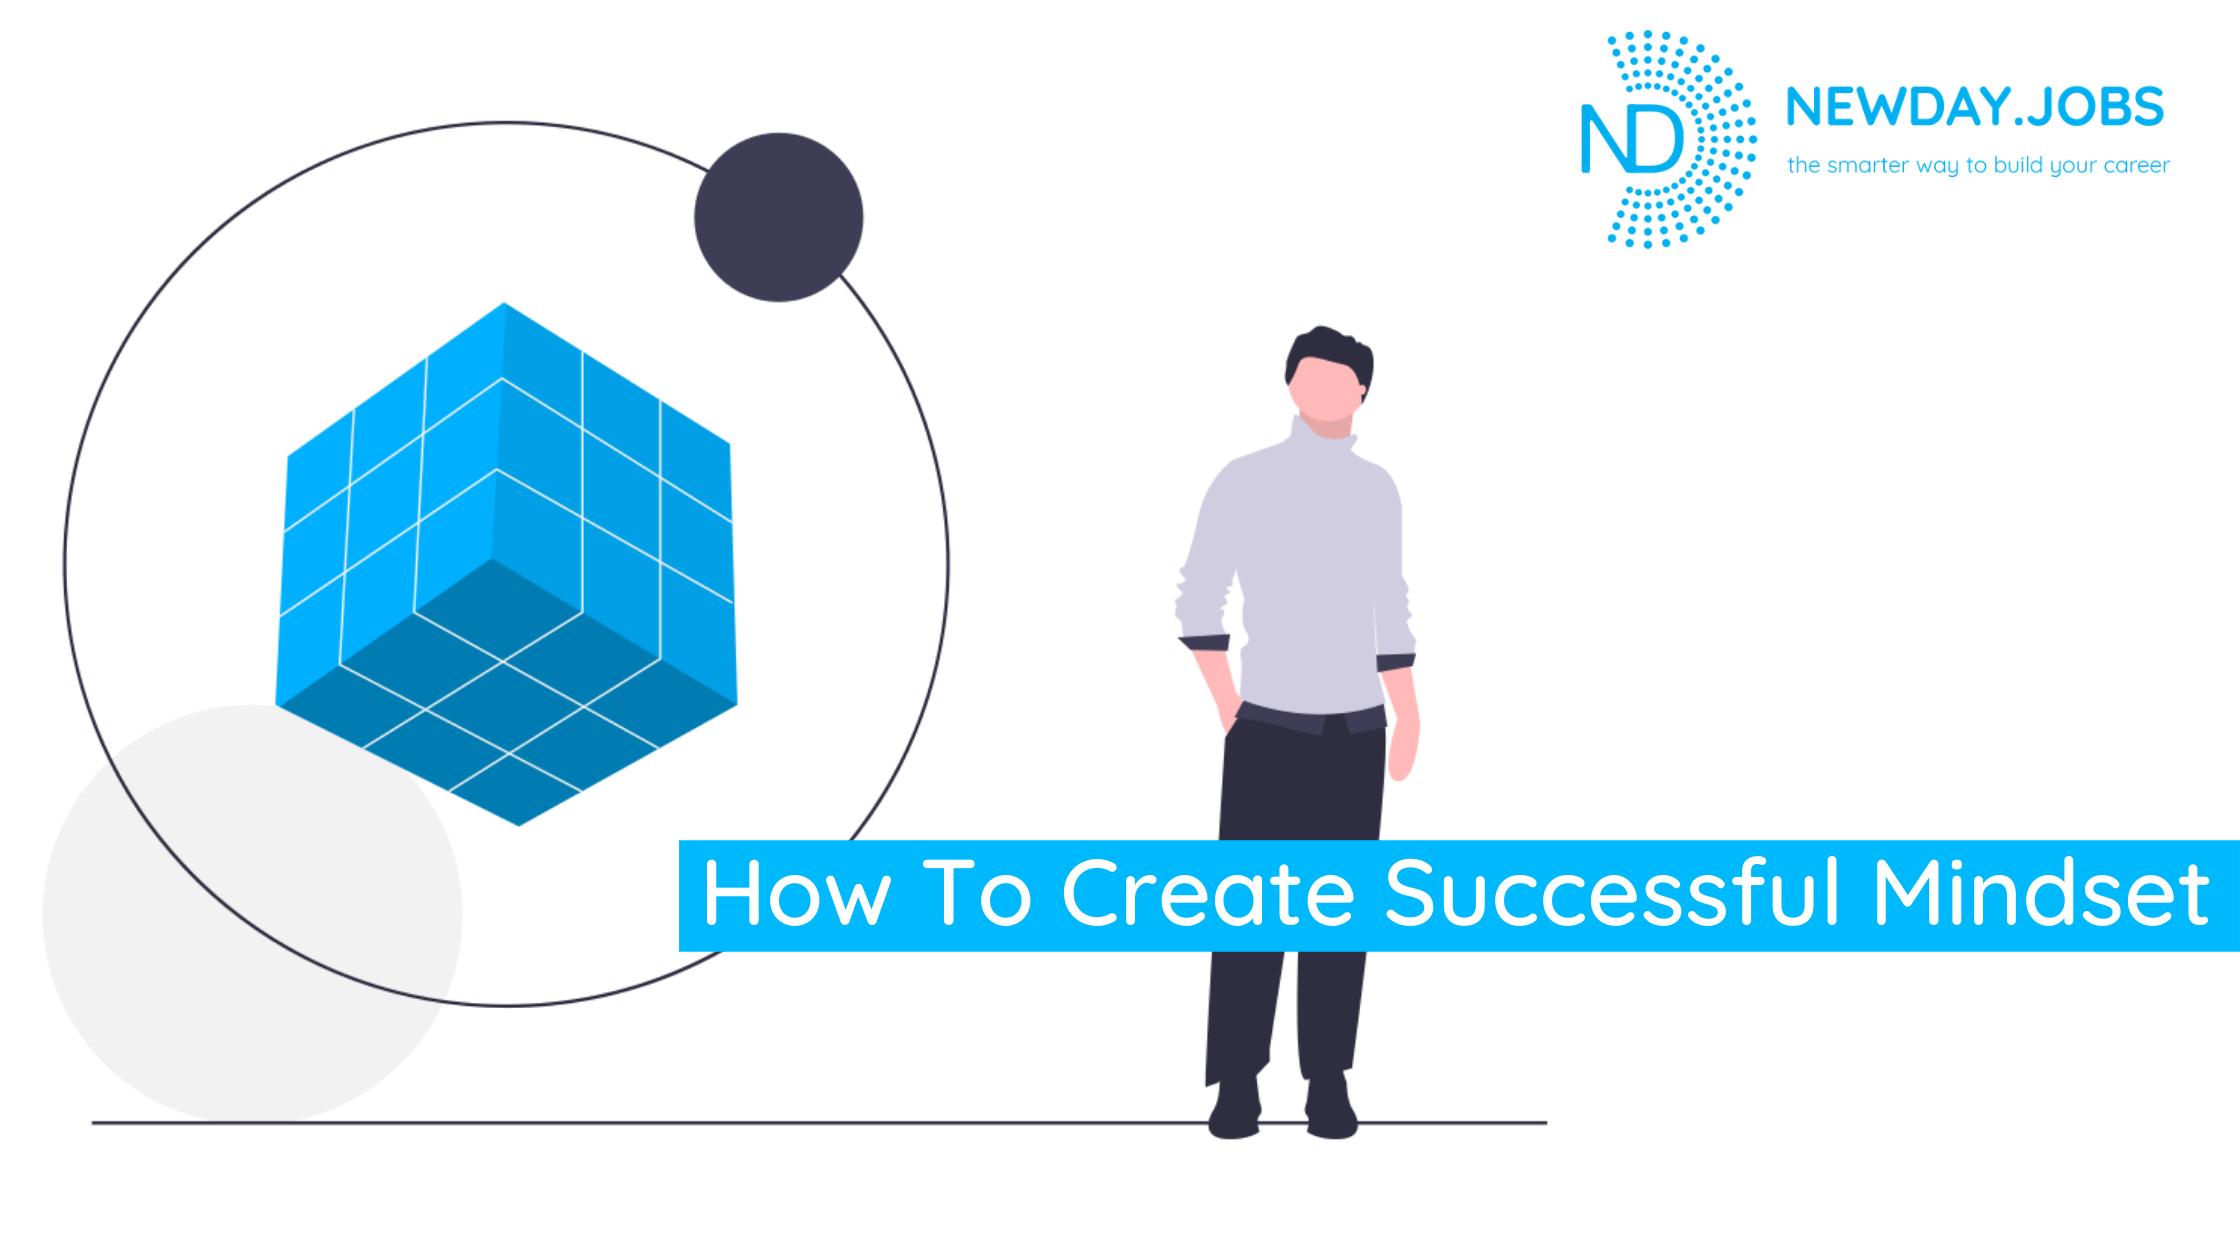 How To Create Successful Mindset | Read more blogs at New Day Jobs